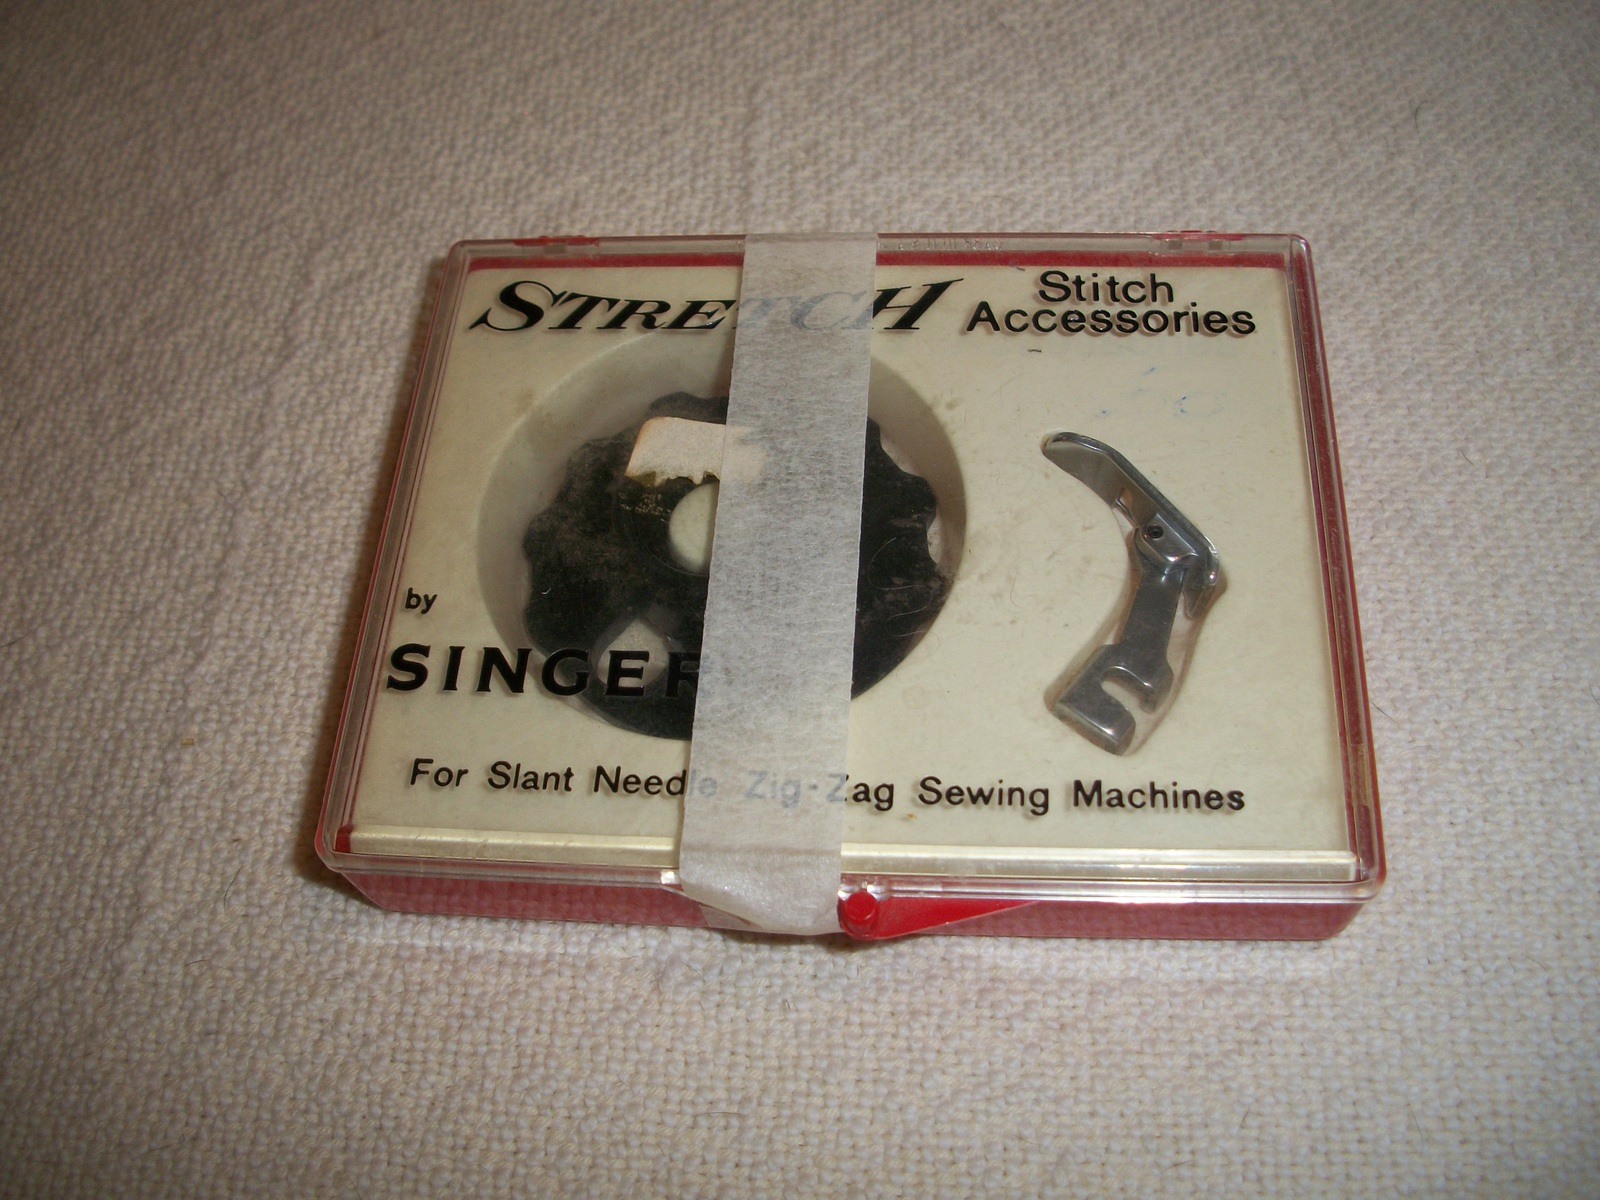 Singer Stretch Stitch Accessories for Slant Needle Sewing Machines